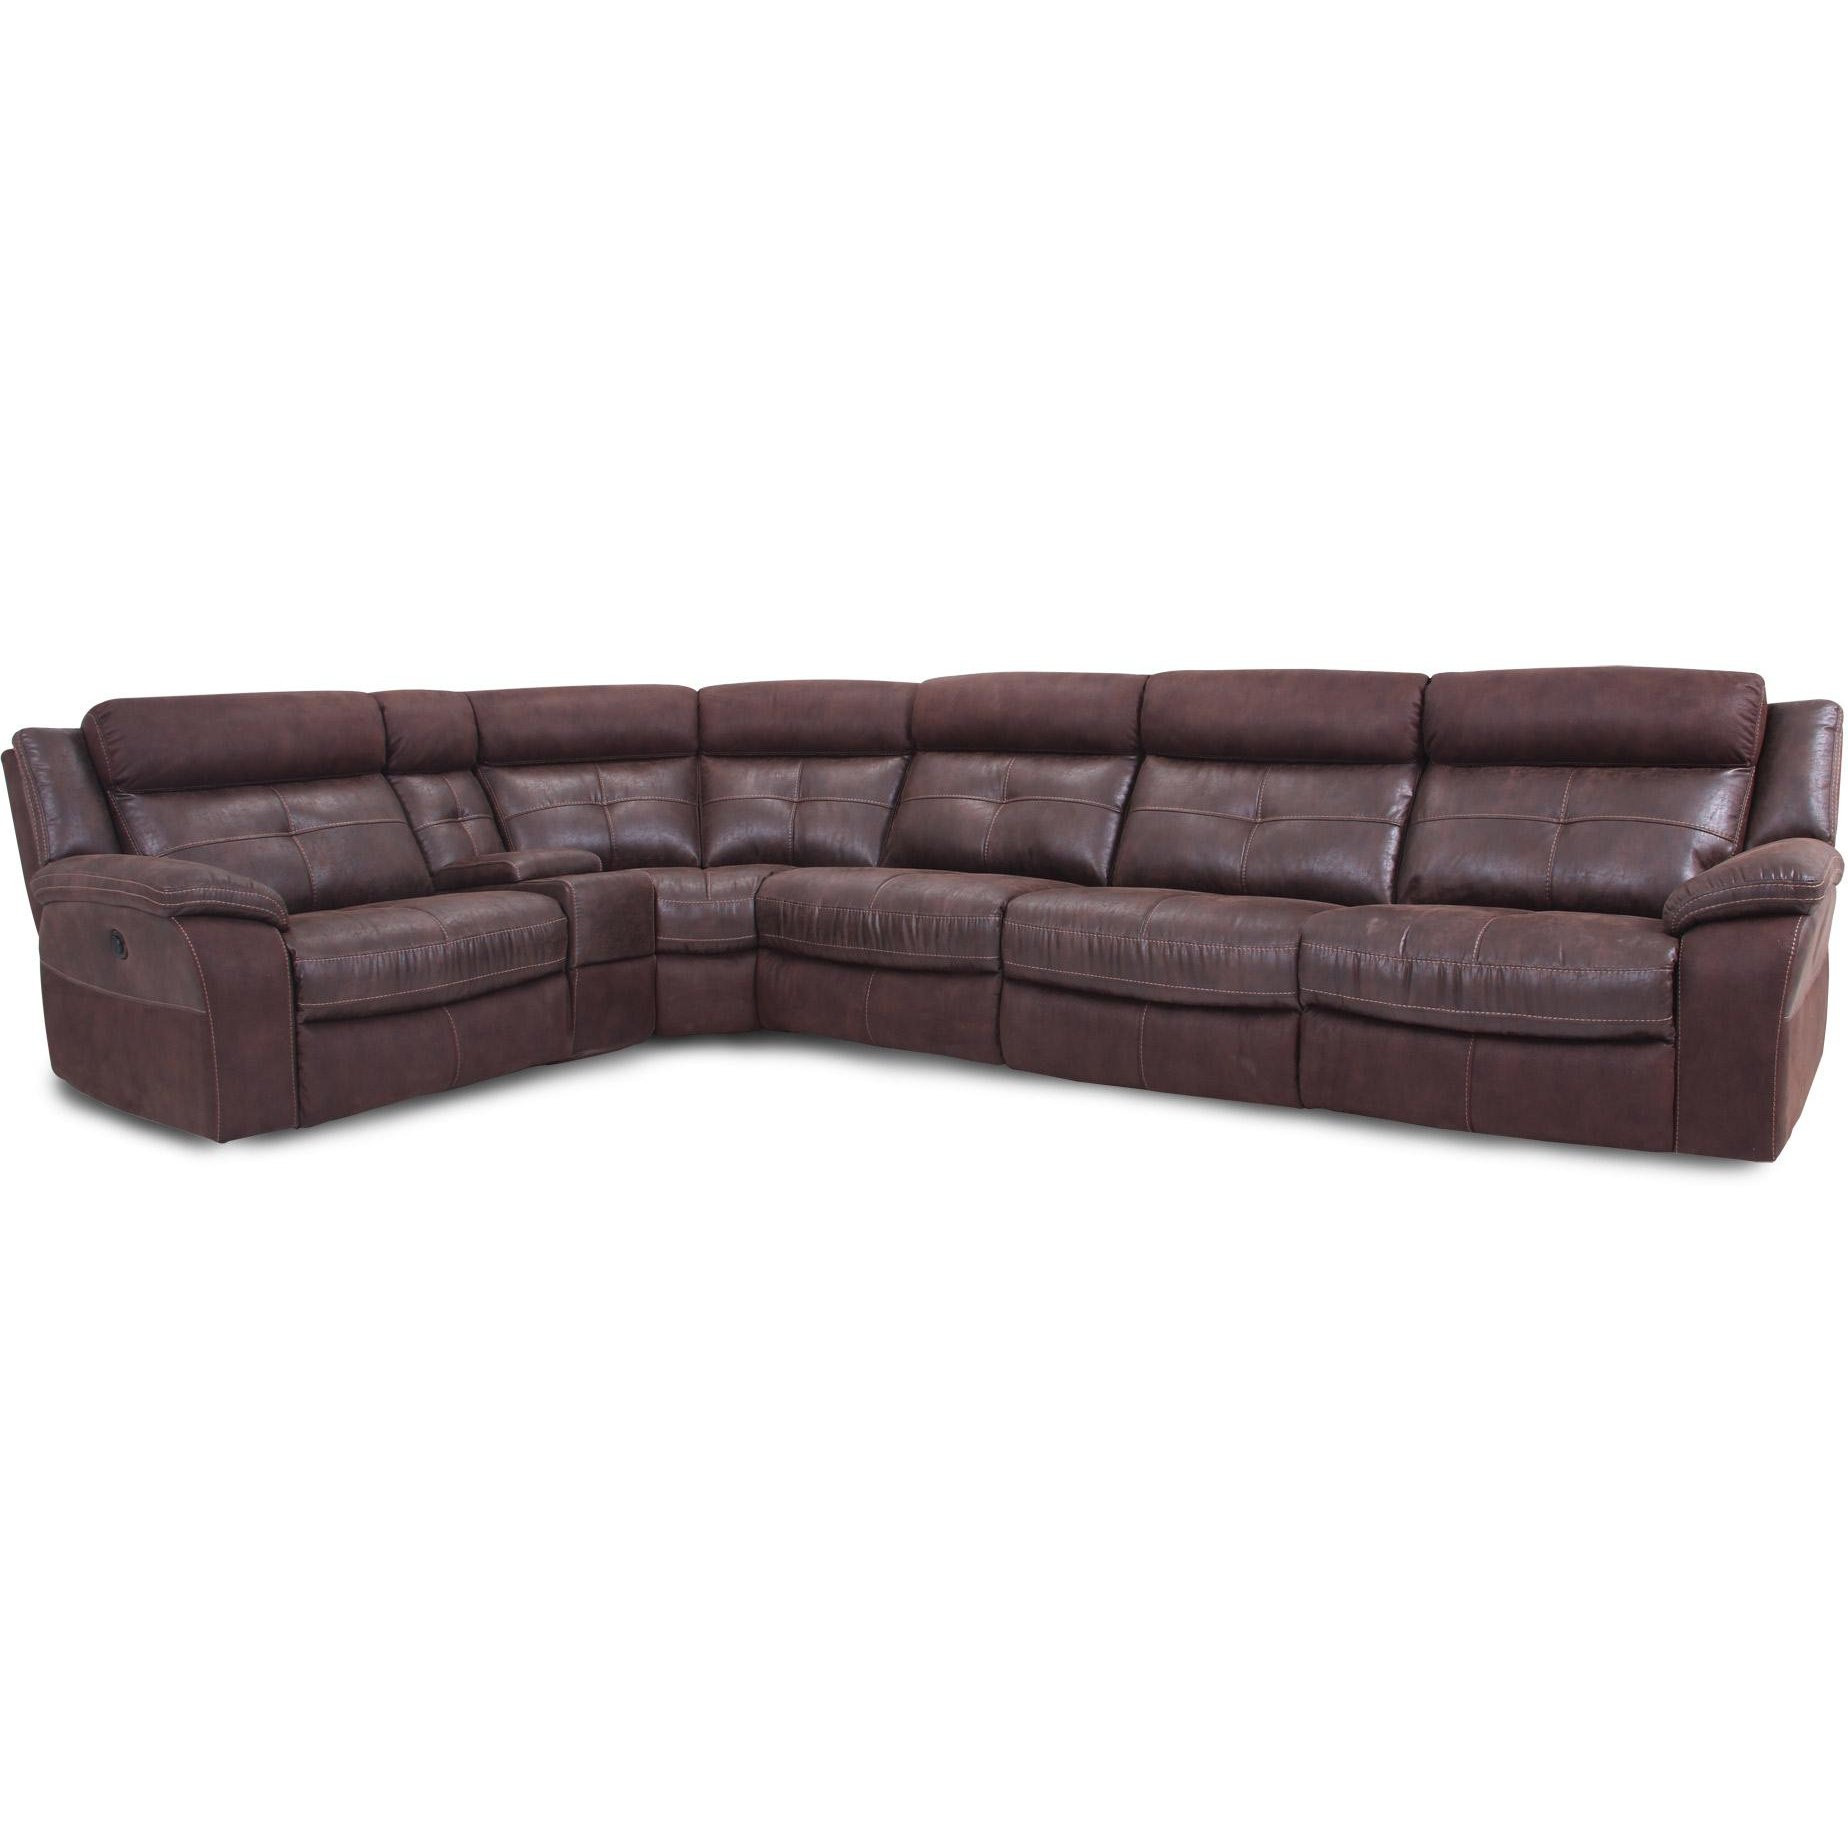 Microfiber Sectional Sofa Brown 6 Piece 3x Power Reclining Sectional Sofa Denver